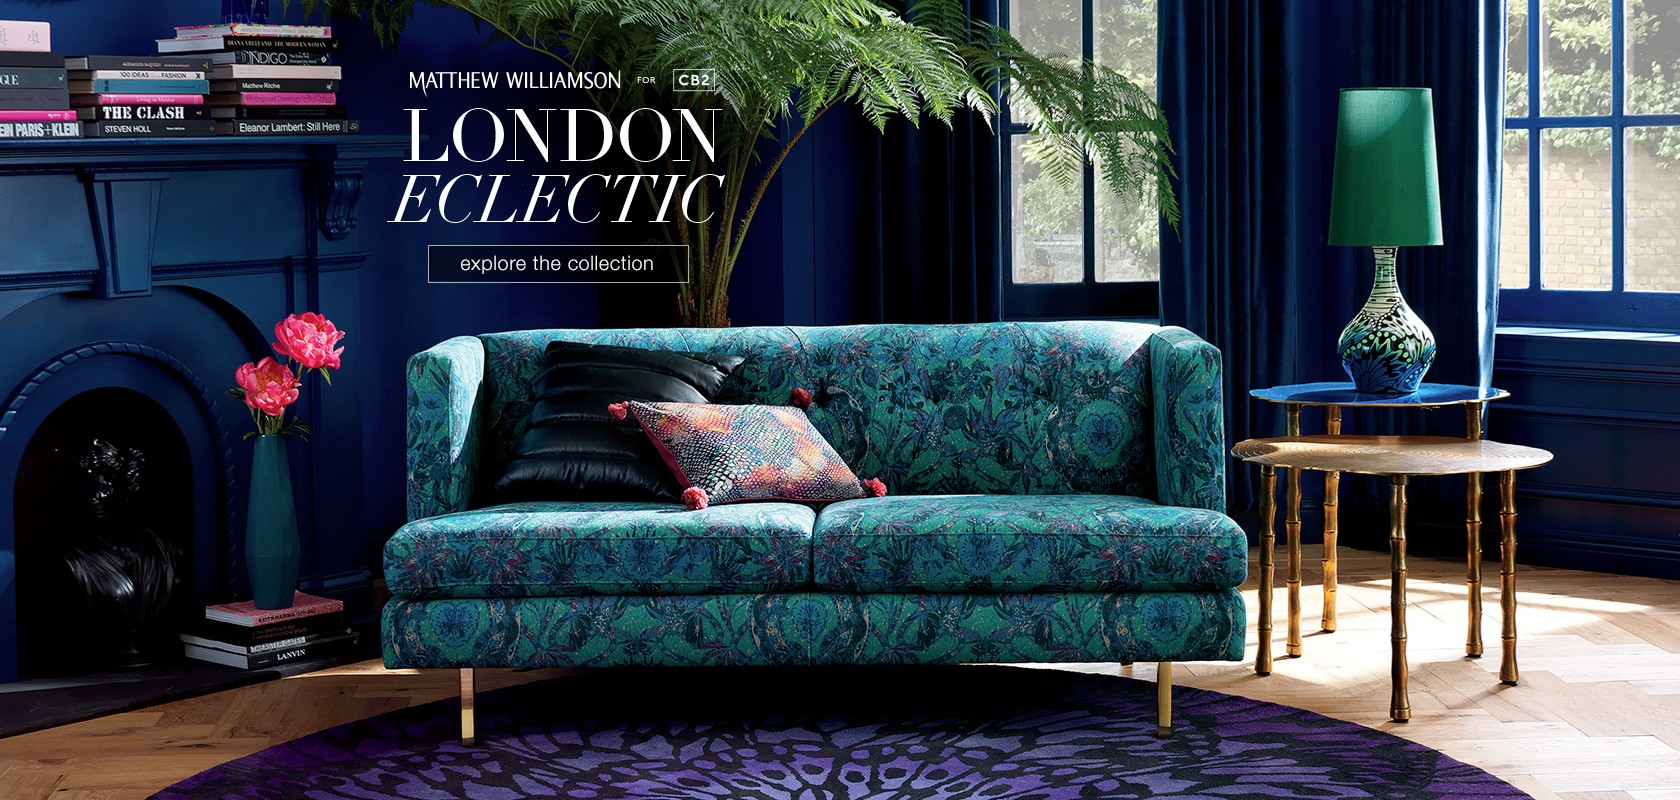 matthew williamson, london eclectic